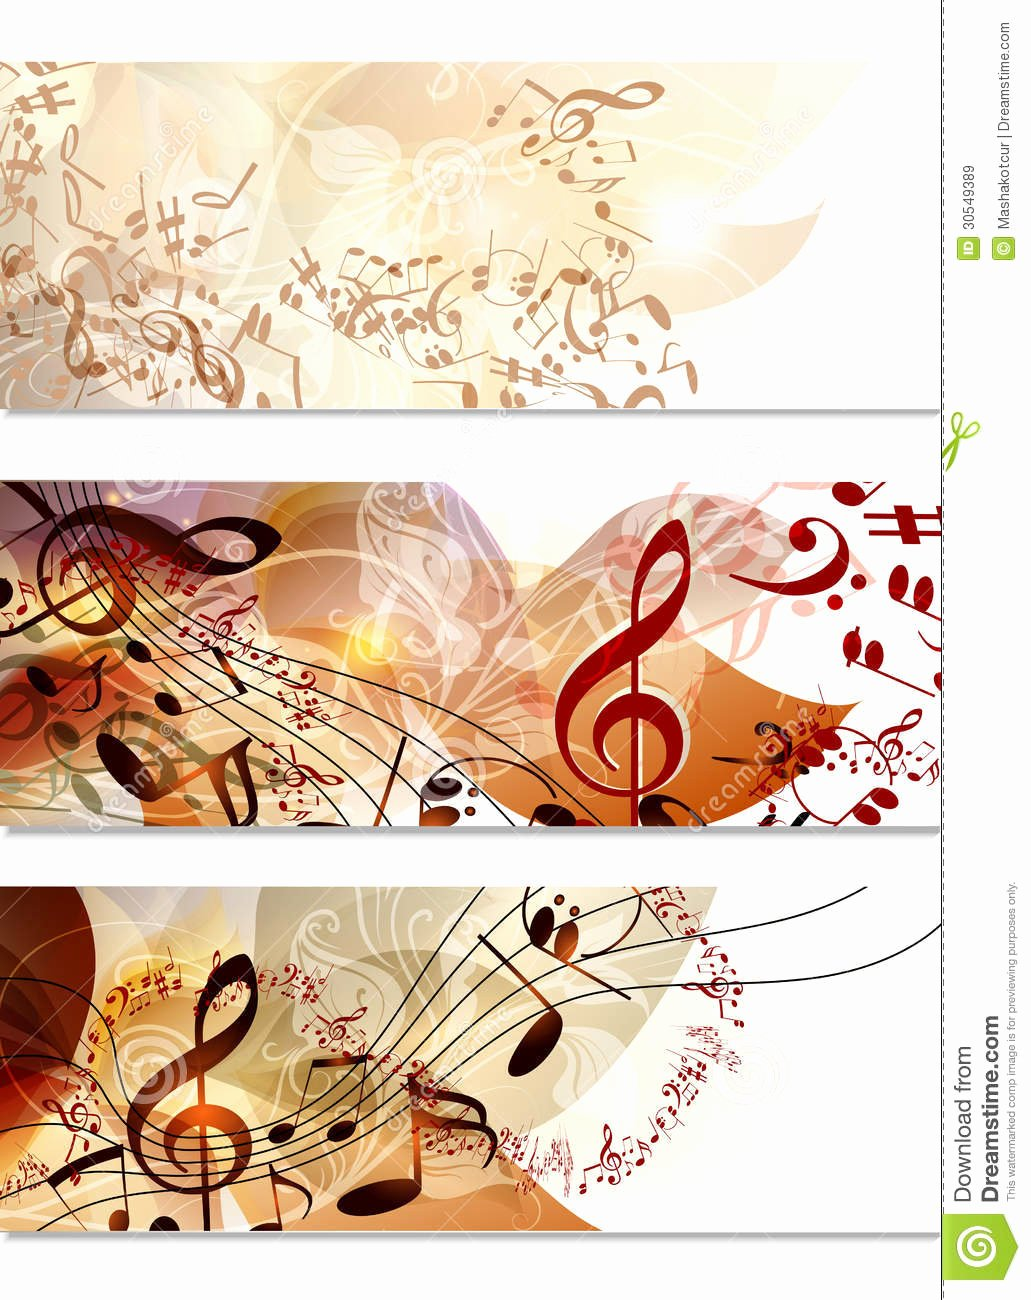 Music Business Cards Template Inspirational Business Cards Template Set In Floral Style Stock Vector Illustration Of Banner Leafs